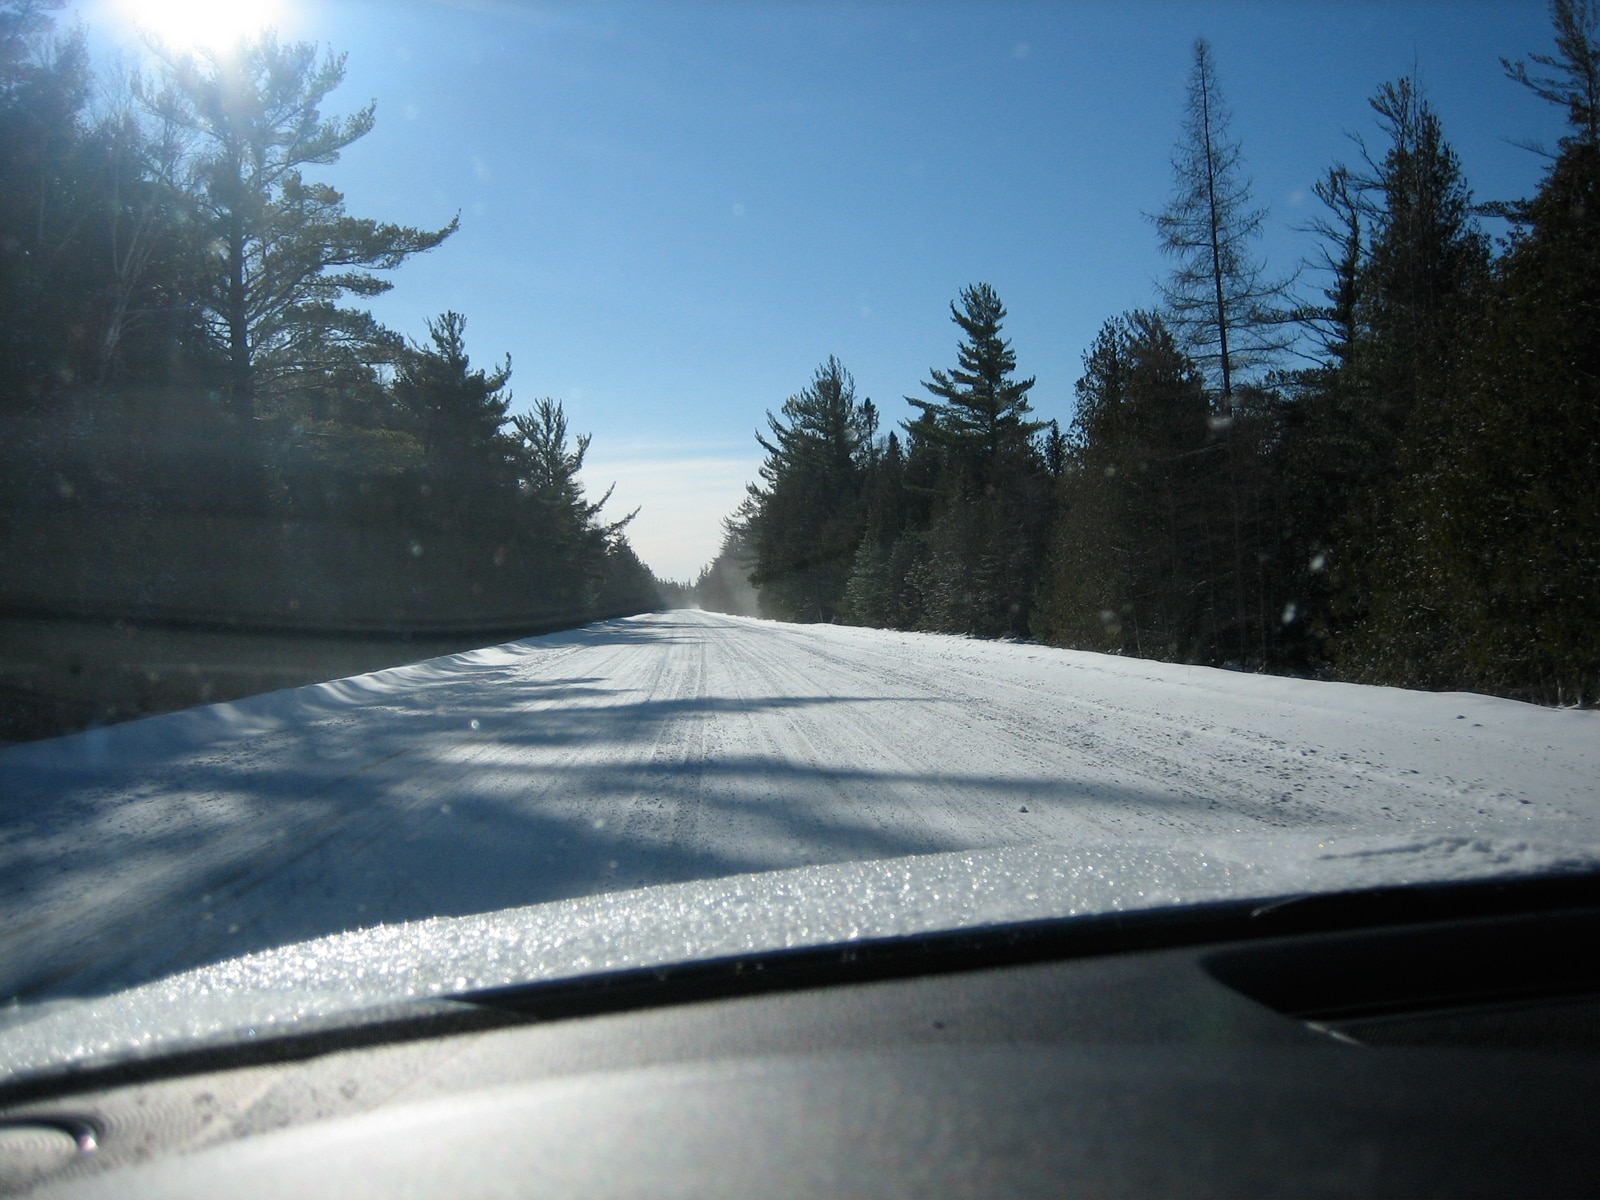 Snow Tire FAQ - All You Need To Know About Snow Tires